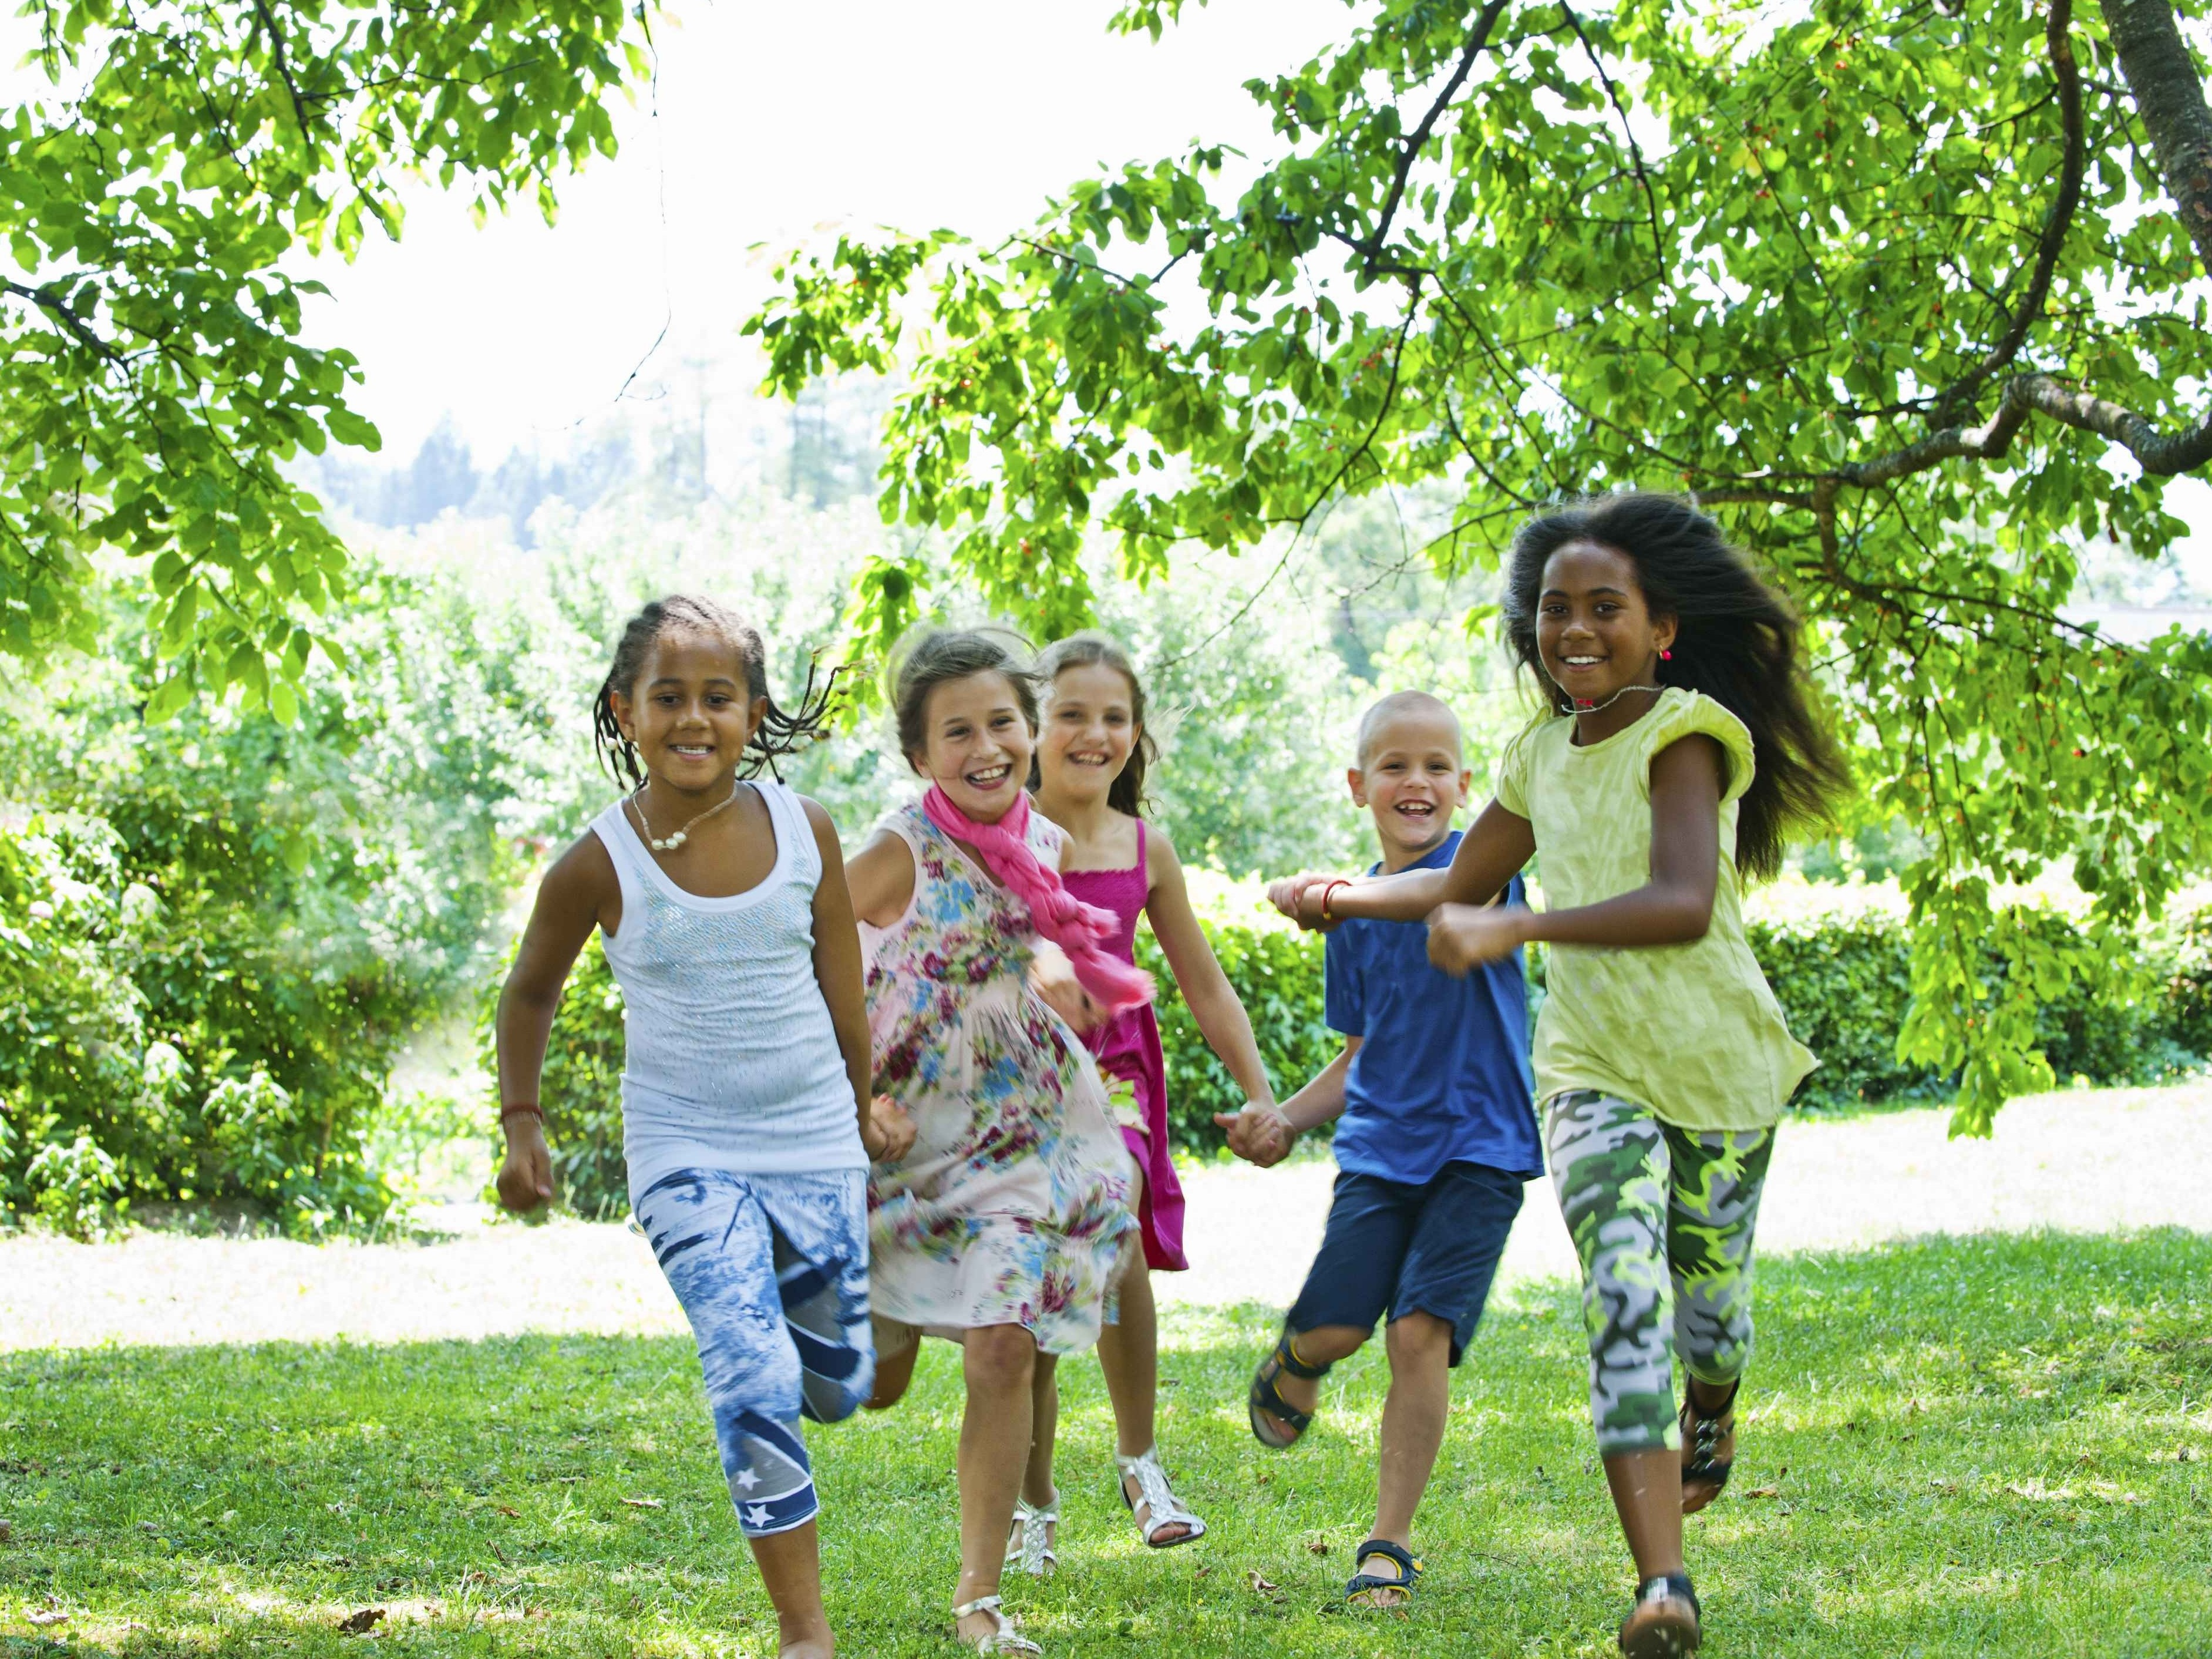 Ready To Try Some Free-Range Parenting?